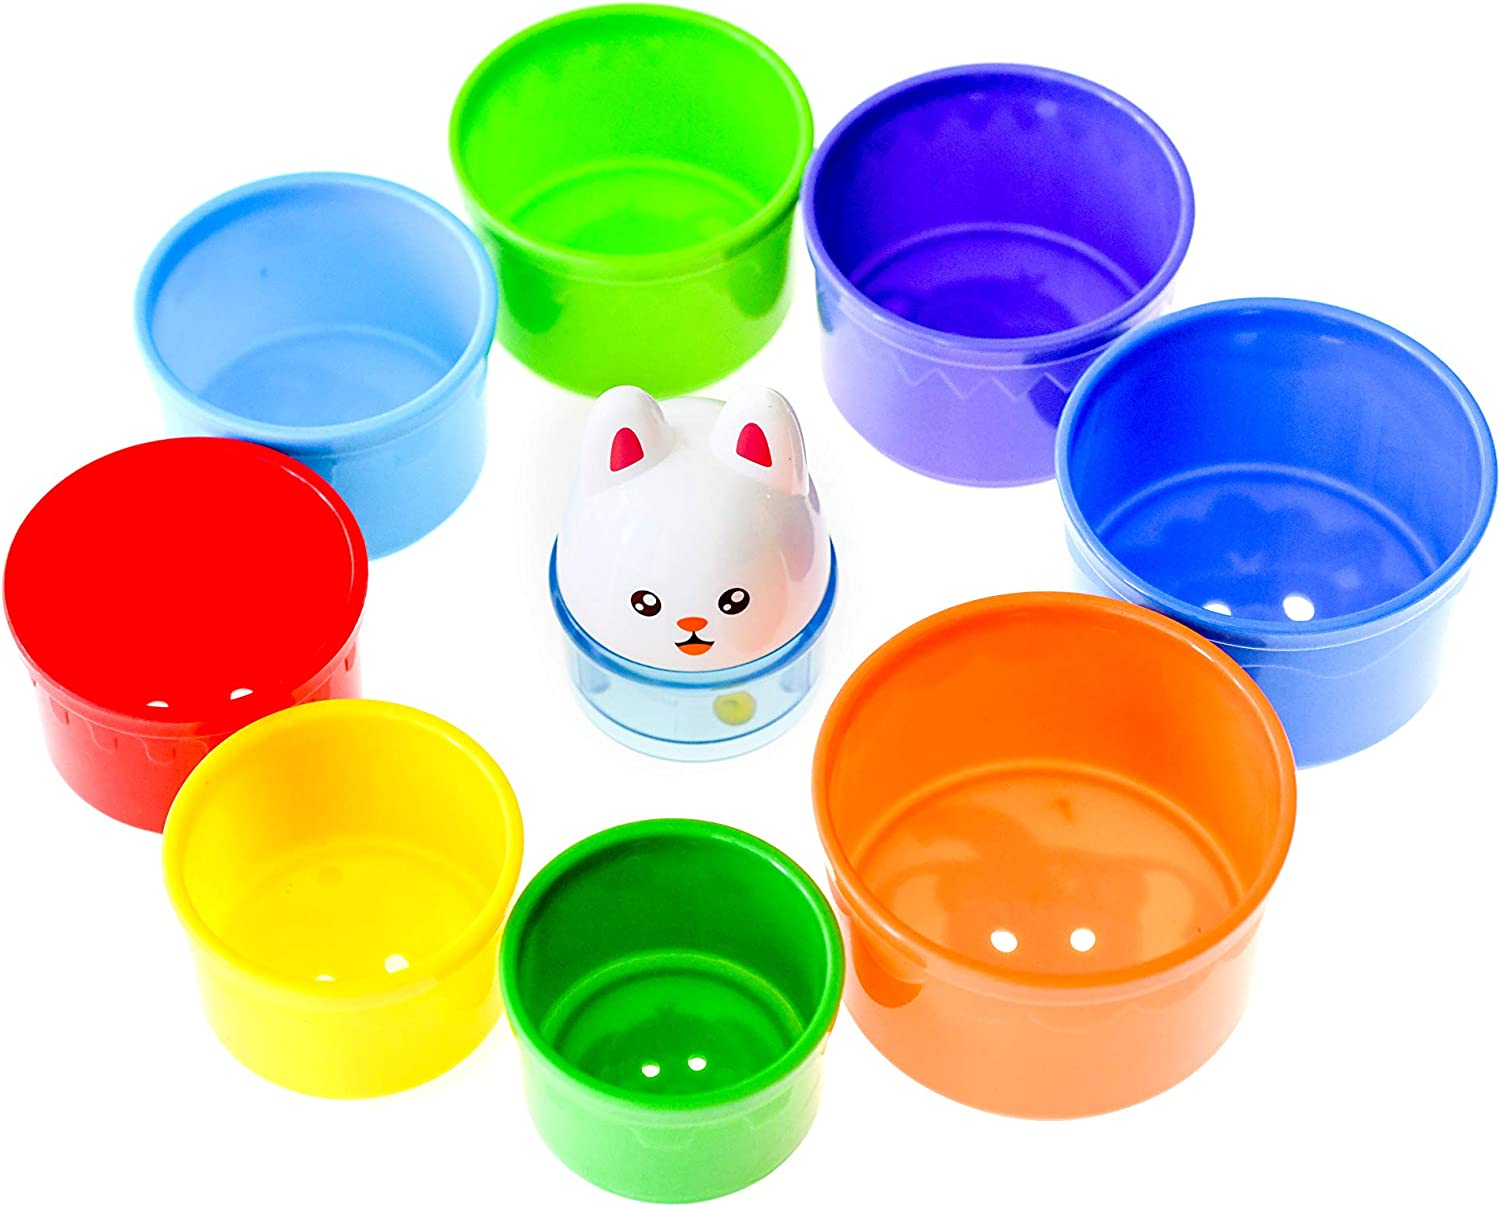 Stacking Cups Colorful Nesting Sand Toy Educational Toy for Babies Toddlers and Young Children Bath Toy